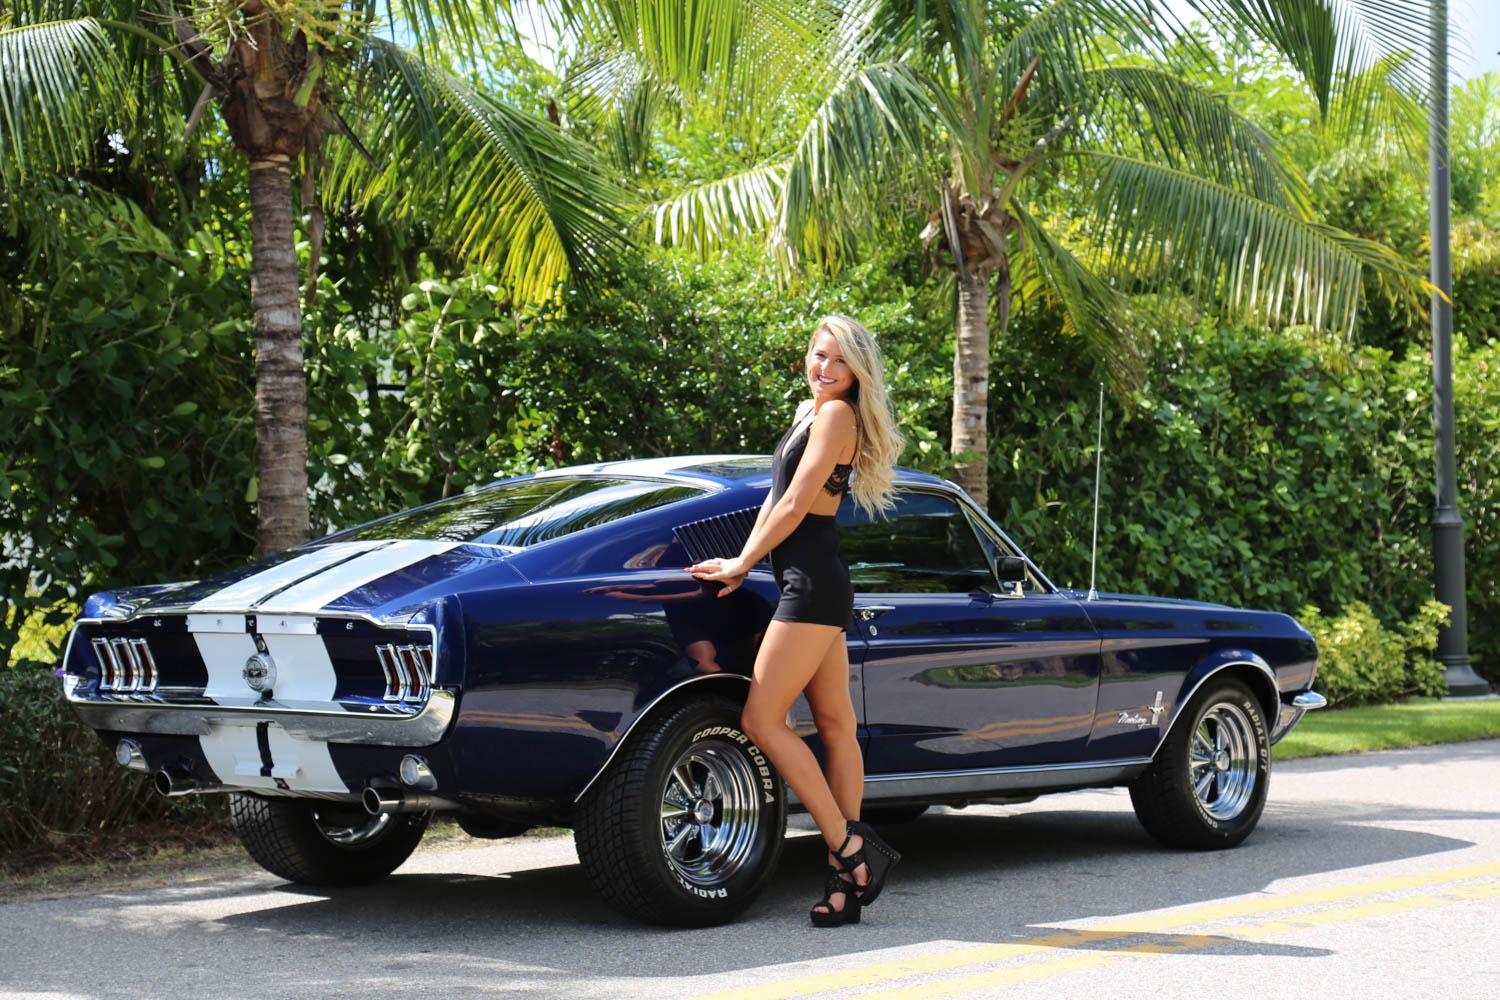 Used 1968 FASTBACK Mustang Mustang for sale Sold at Muscle Cars for Sale Inc. in Fort Myers FL 33912 1